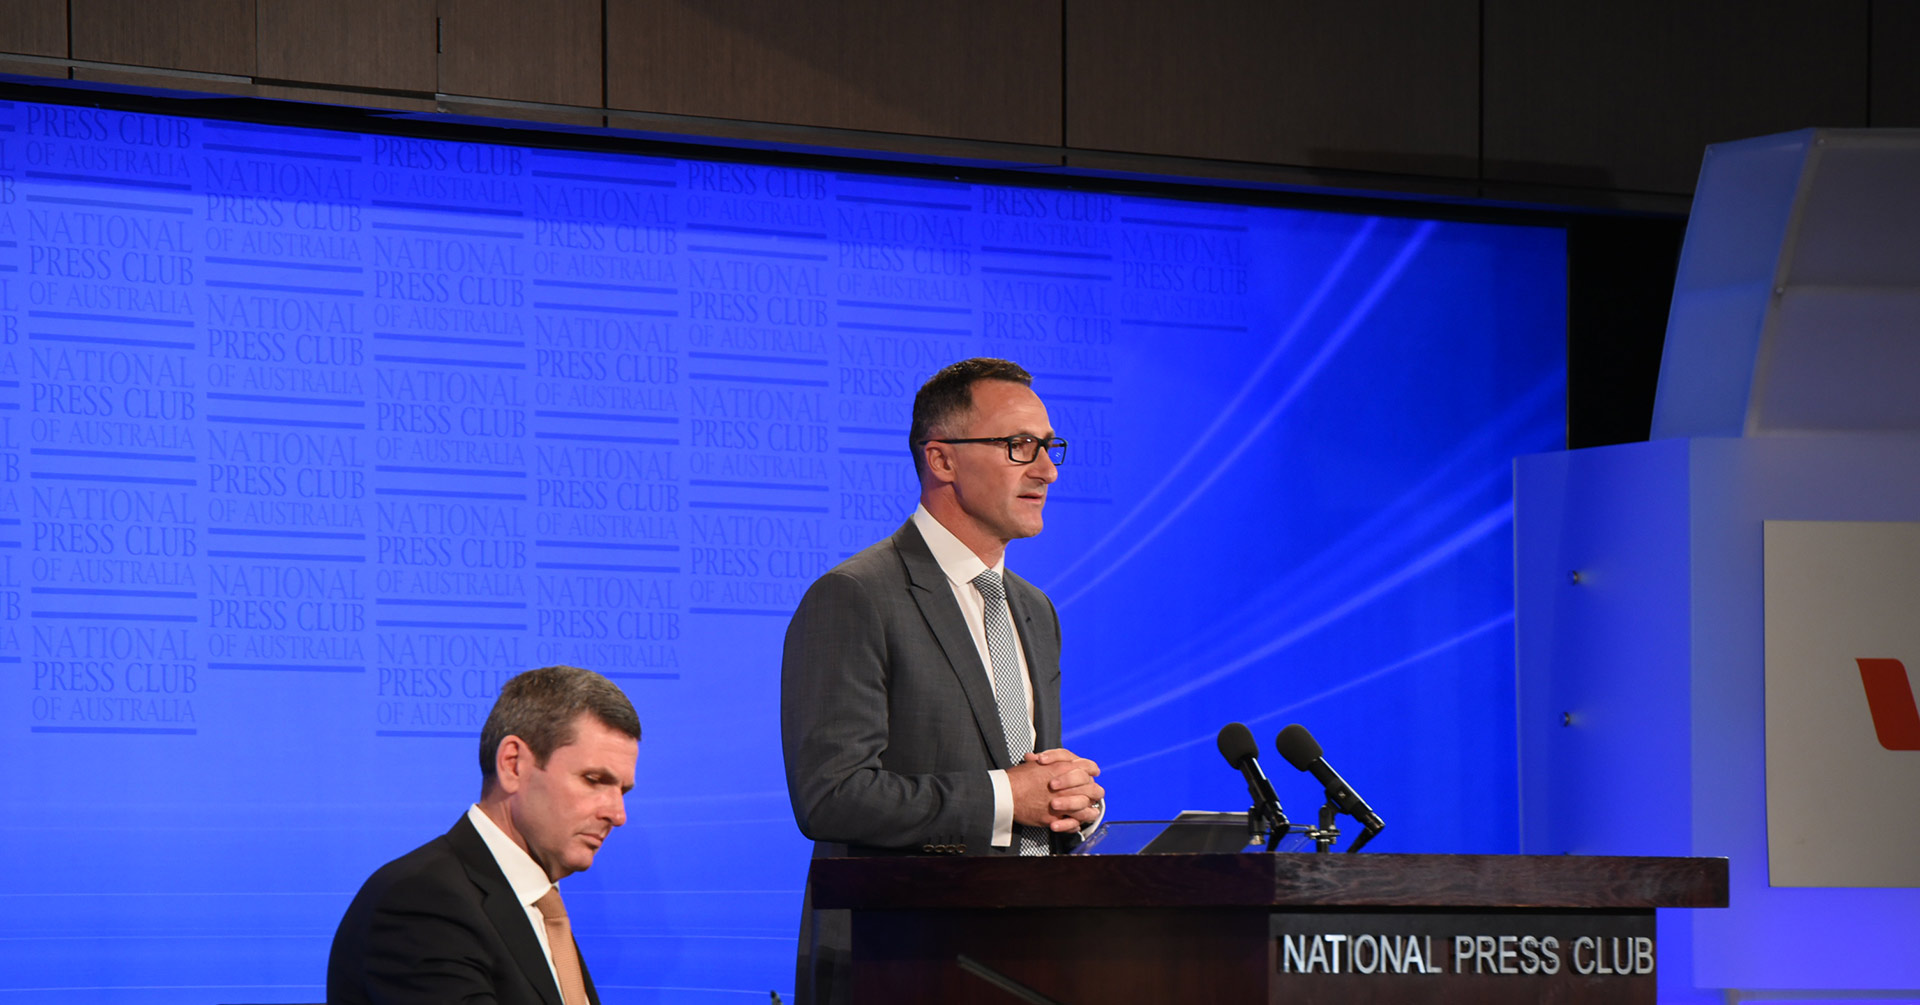 Richard at the National Press Club